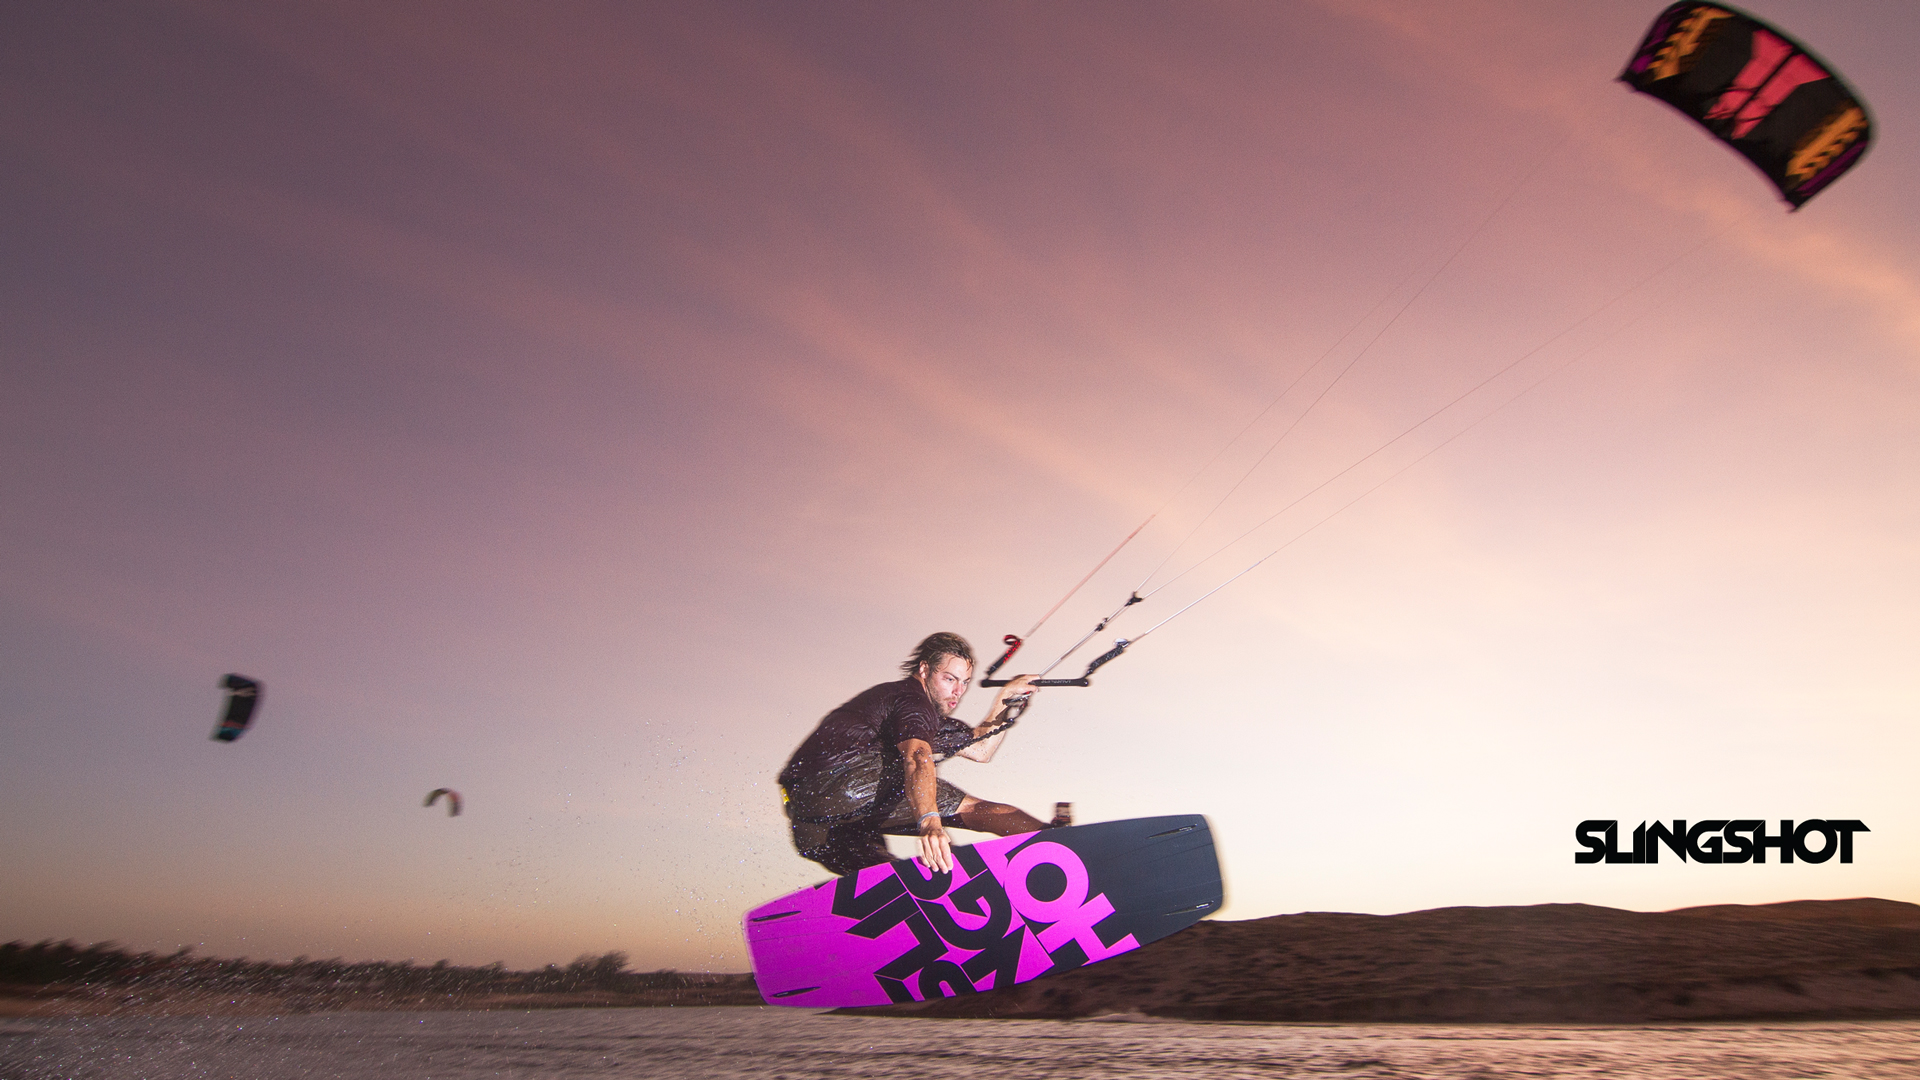 kitesurf wallpaper image - Grabbing some rail on the 2015 Slingshot Asylum board and flying the RPM kite. - in resolution: High Definition - HD 16:9 1920 X 1080